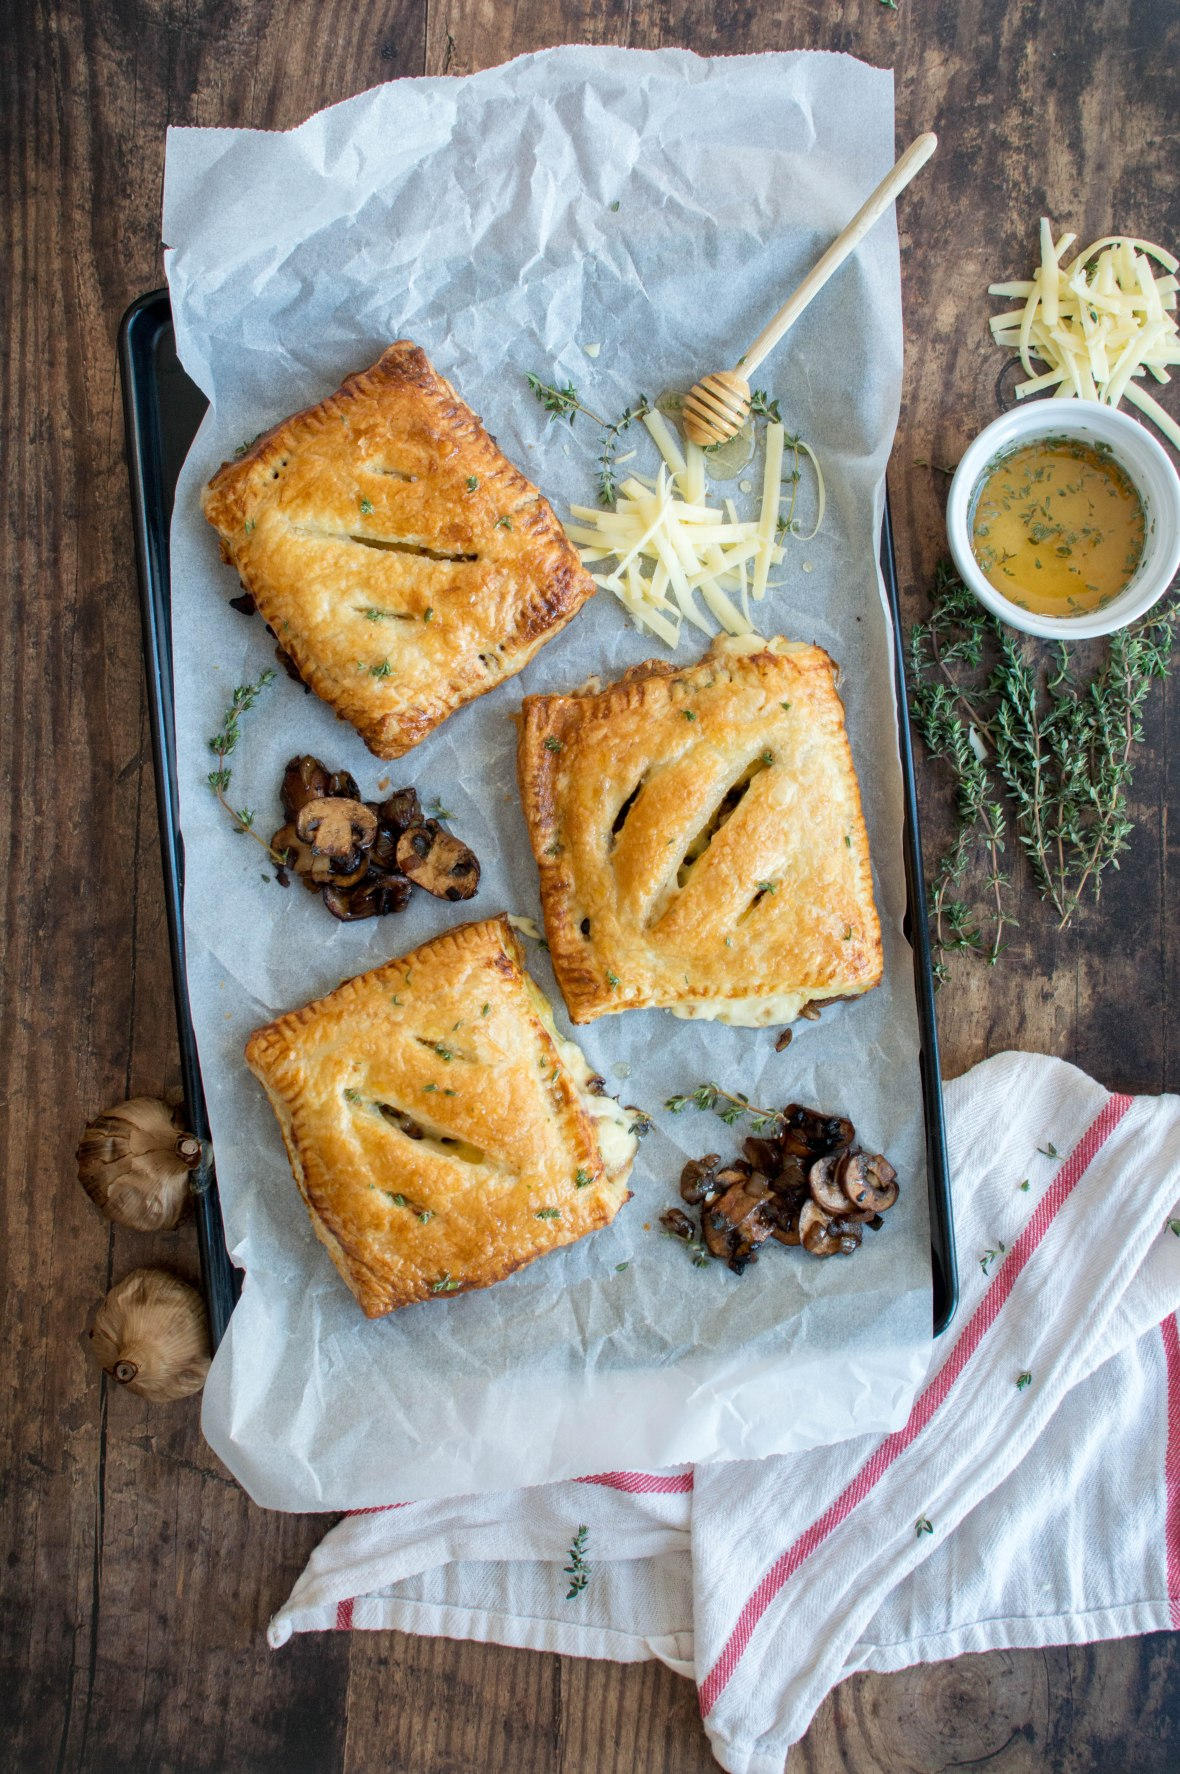 Black Garlic, Mushroom And Cheddar Pasty With Salted Thyme Honey Drizzle - Kay's Kitchen